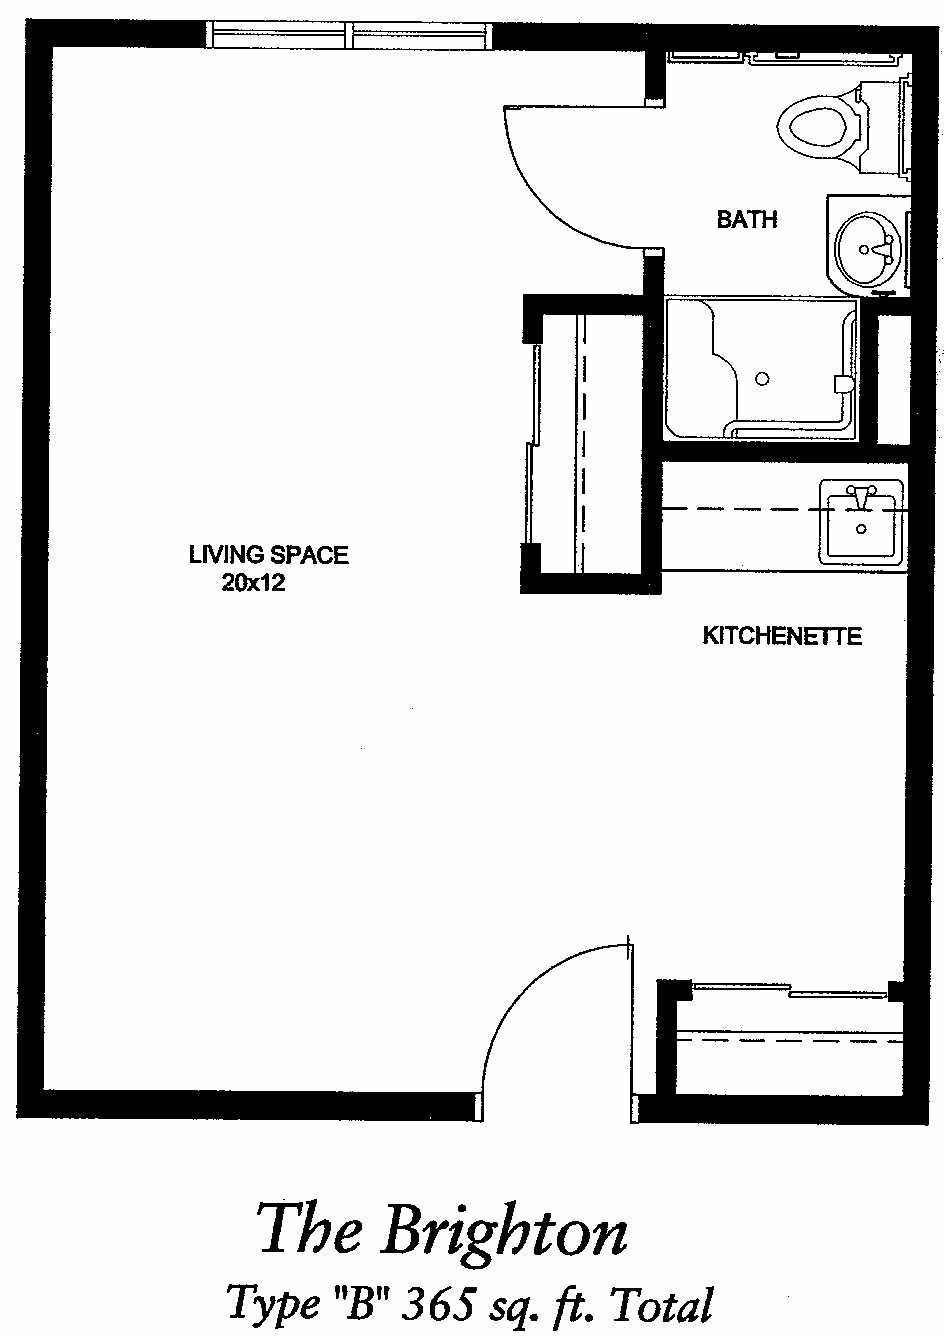 Image Result For 400 Sq Ft Studio Apartment Floor Plan Apartment Floor Image Plan Res In 2020 Studio Apartment Floor Plans Studio Floor Plans Apartment Floor Plans